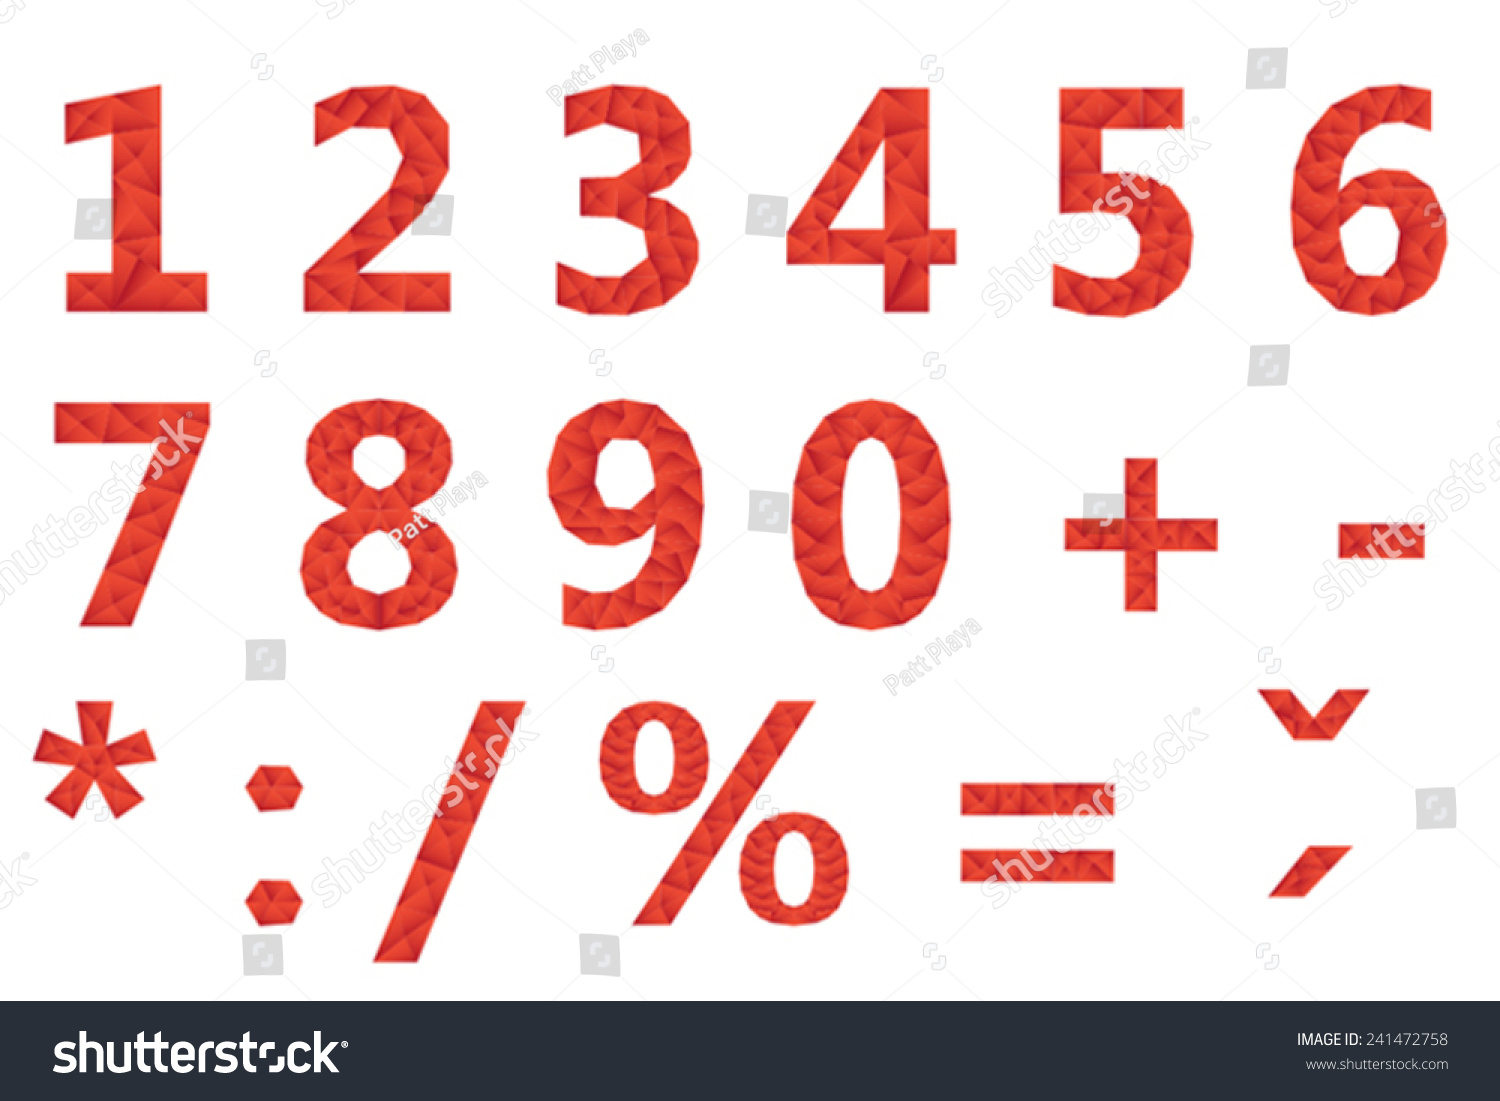 Mathematical Symbols Red Polygonal Numbers Geometric Stock Vector